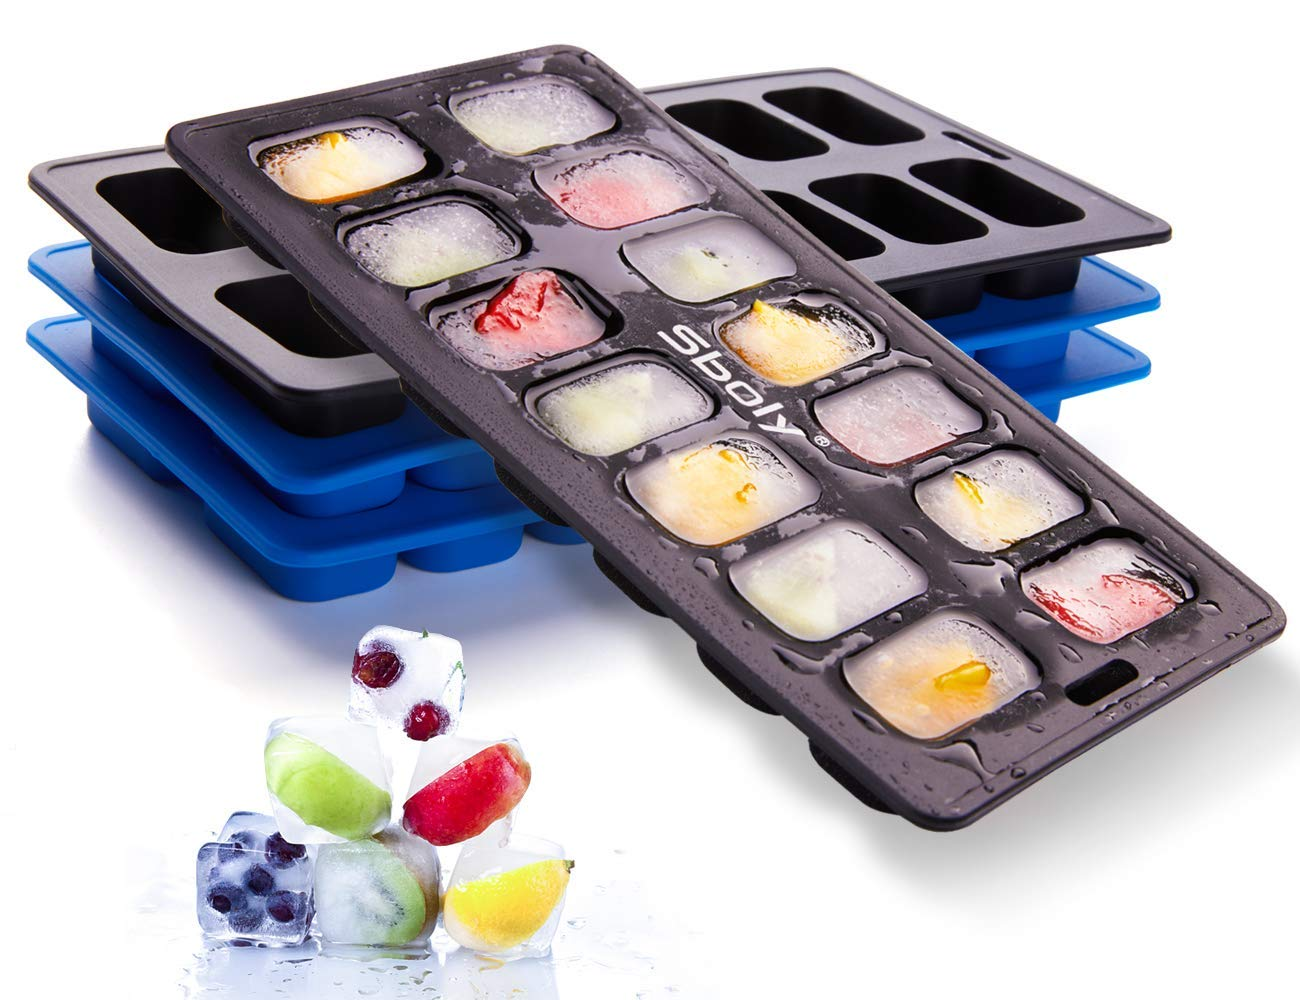 Ice Cube Trays 4 Pack, Sboly 100% Silicone Ice Cube Maker Chocolate Molds Flexible 14-Ice Trays, BPA Free and FDA Certified, Easy-Release Durable and Dishwasher Safe (2 Black 2 Blue)